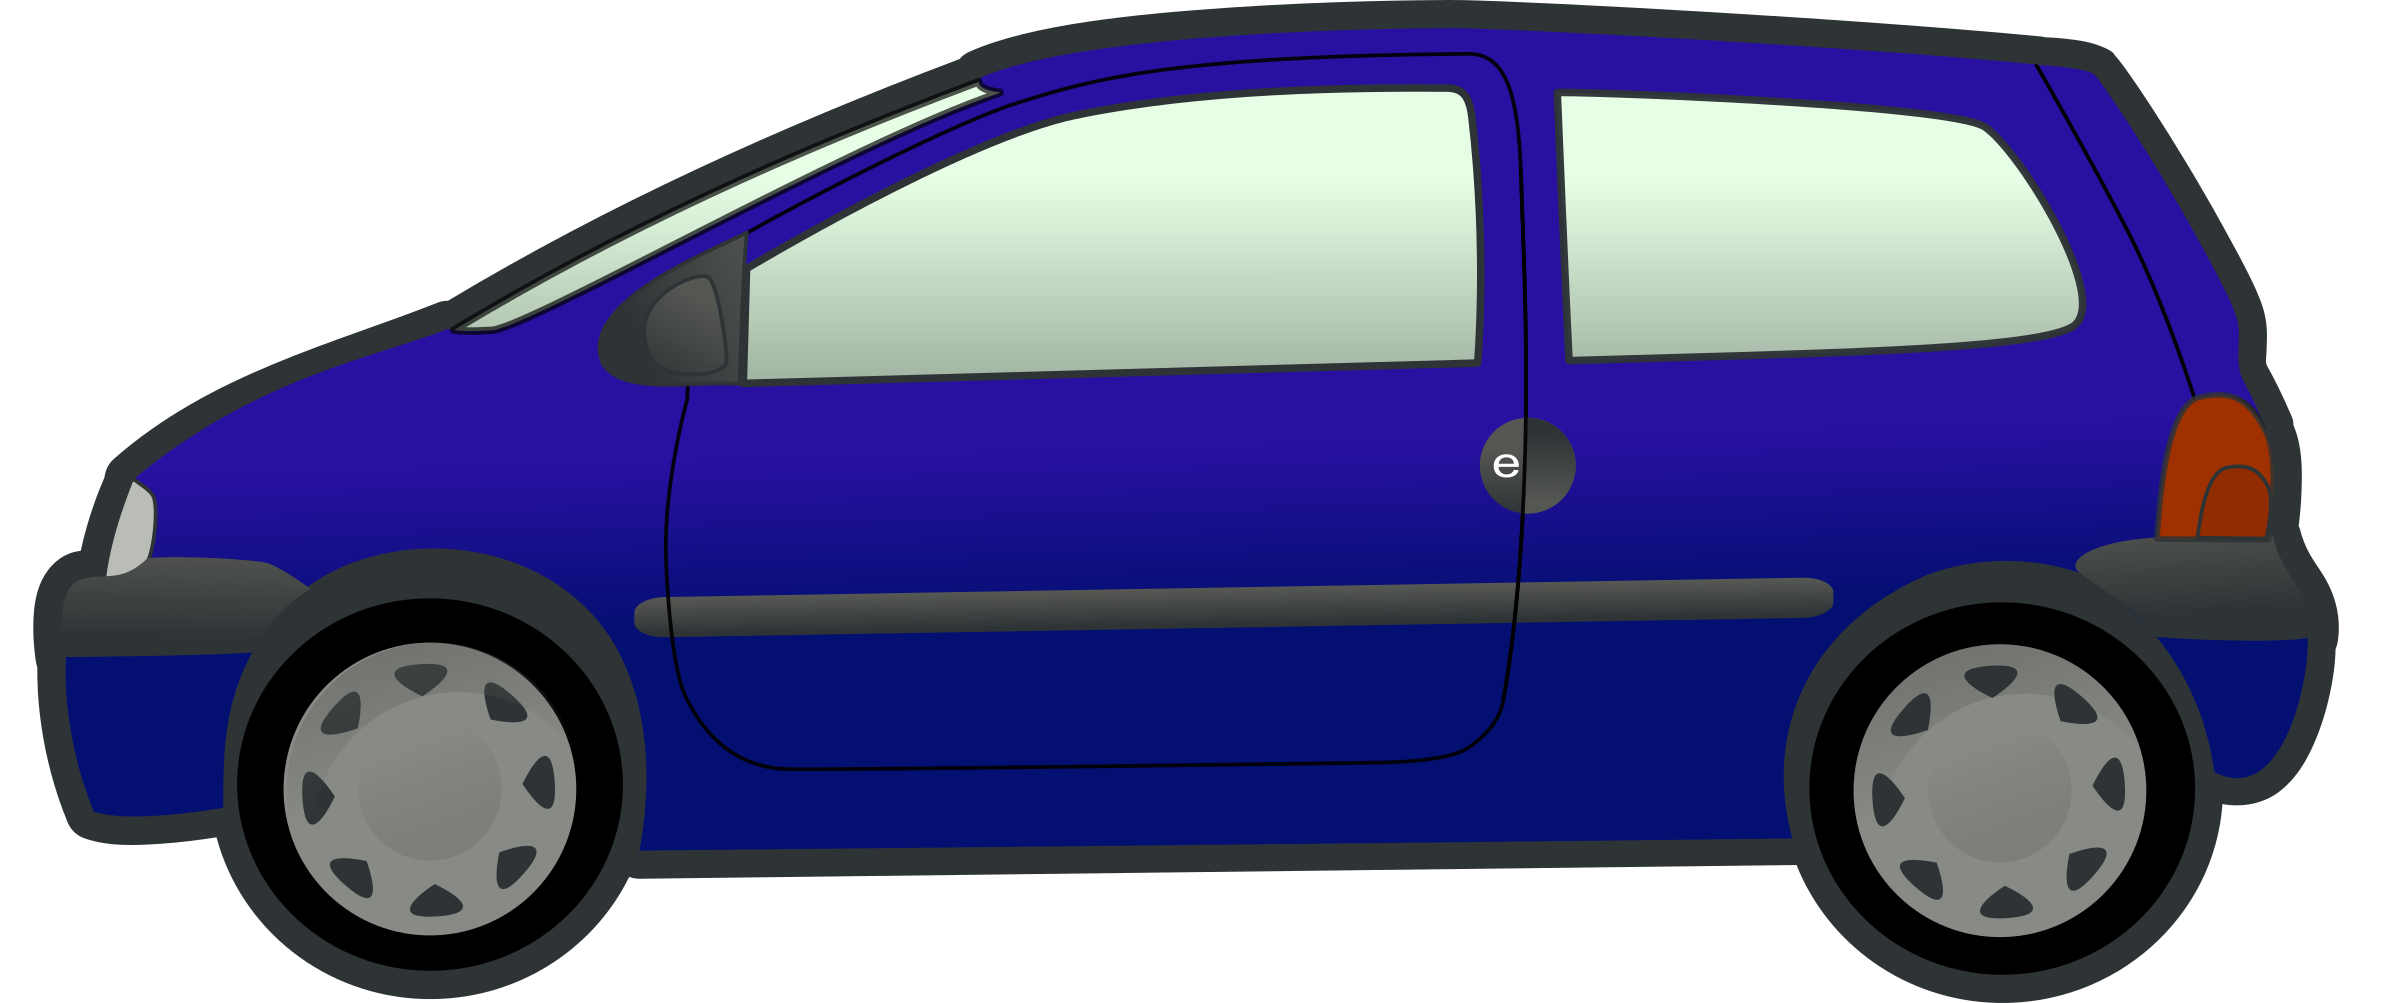 image library stock  collection of blue. Minivan clipart